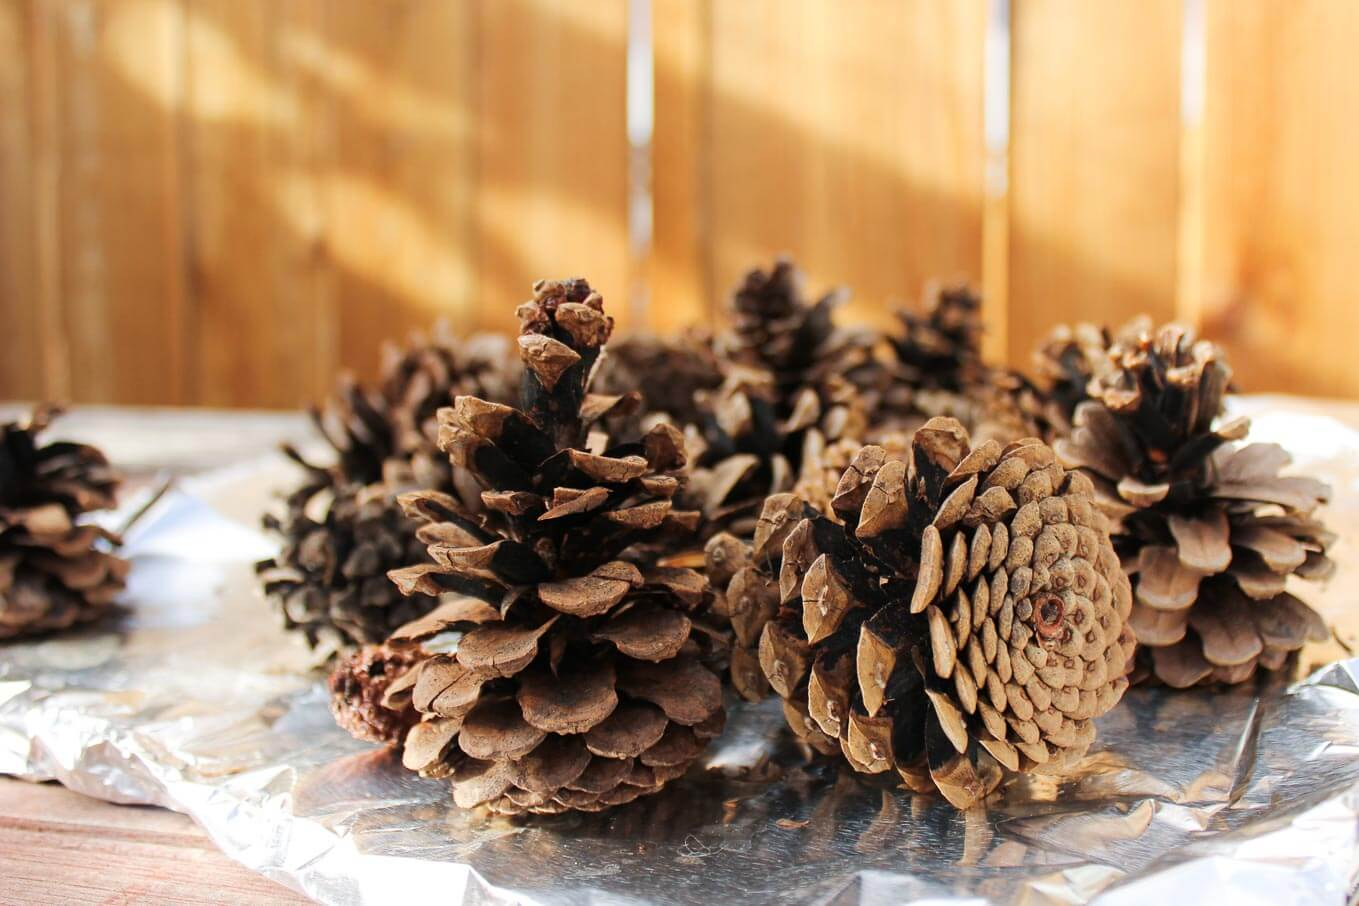 Learn how to de-bug, disinfect and clean pine cones for craft projects by simply using vinegar and your oven. Also, learn how to make pine cones open (or bloom) for even more crafty potential. Click to see full tutorial. | MakeAndDoCrew.com